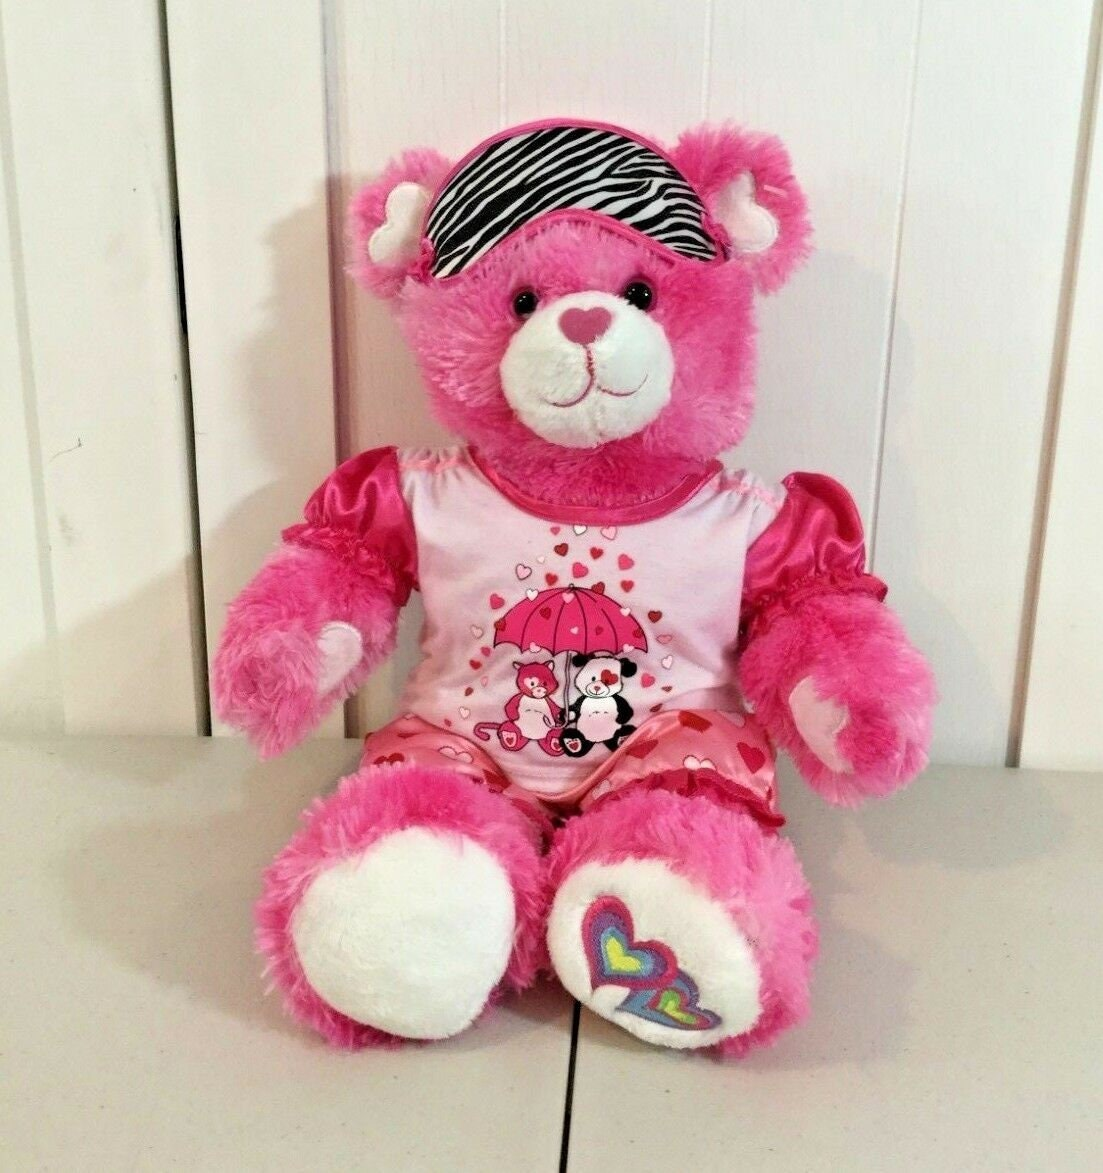 2cb636e1234 Build a bear pink bear with heart paws ears nose wearing etsy jpg 1103x1173 Pink  bear